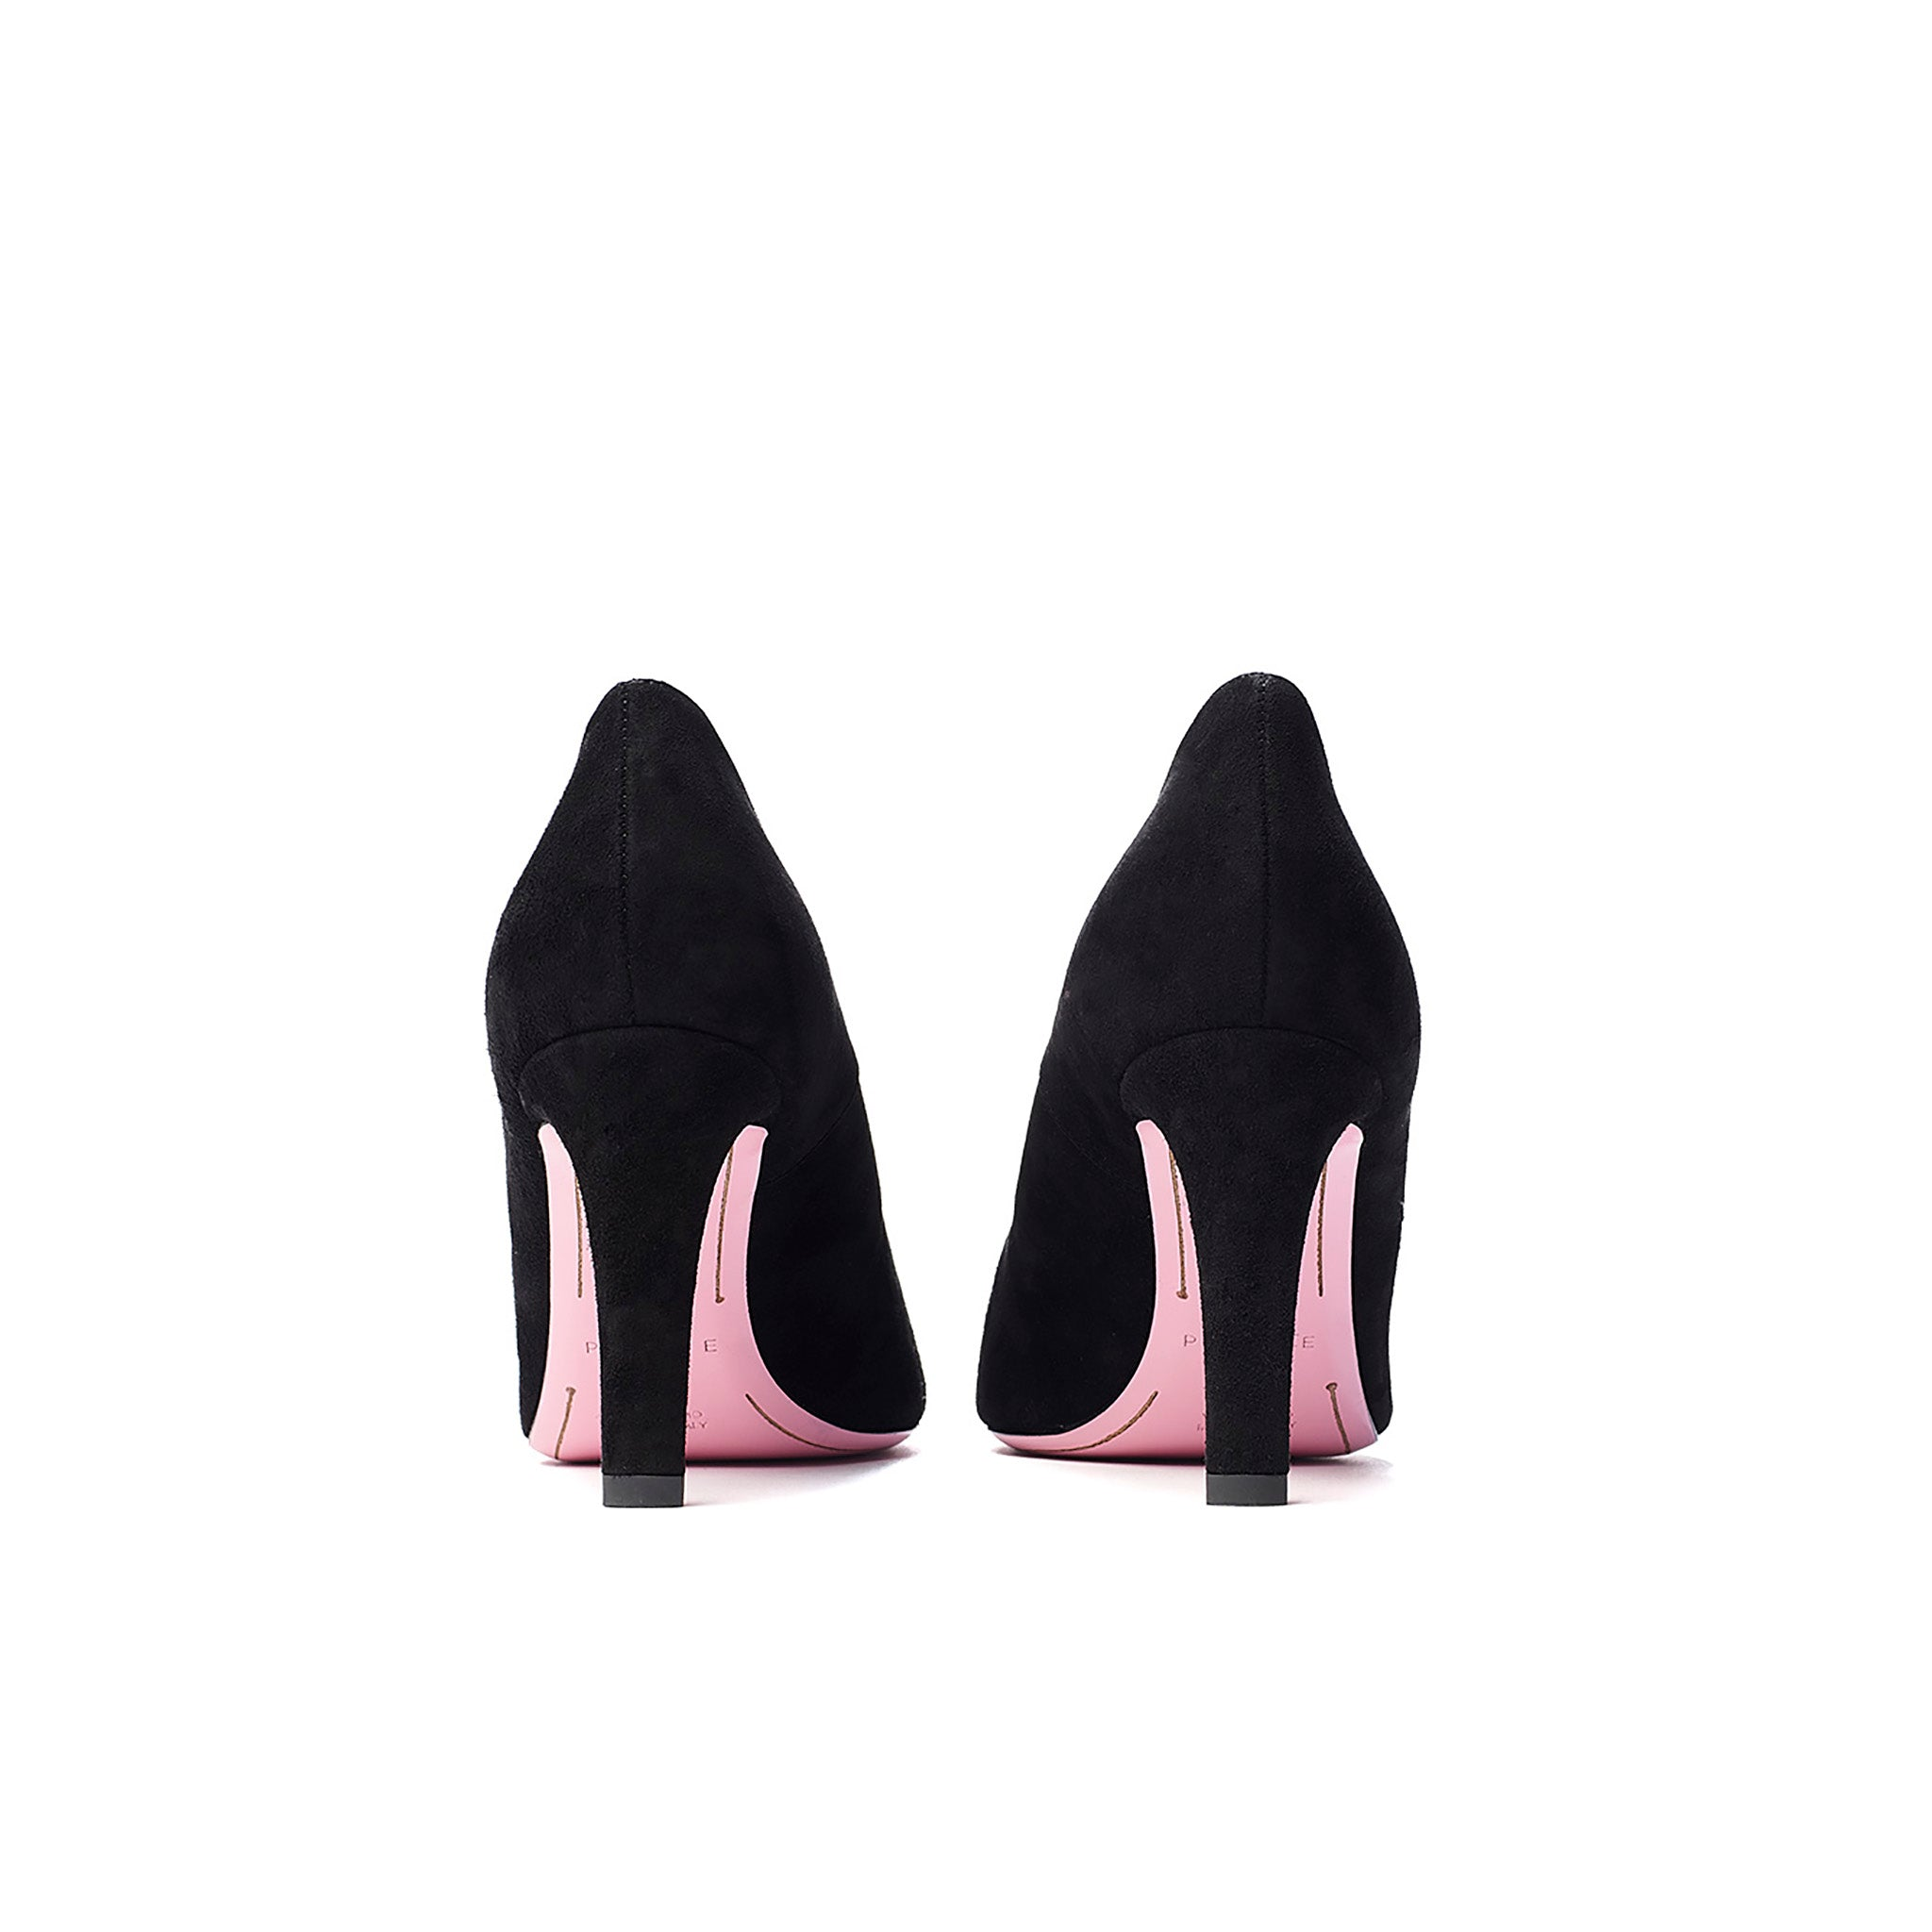 Phare asymmetrical pump in black suede top view